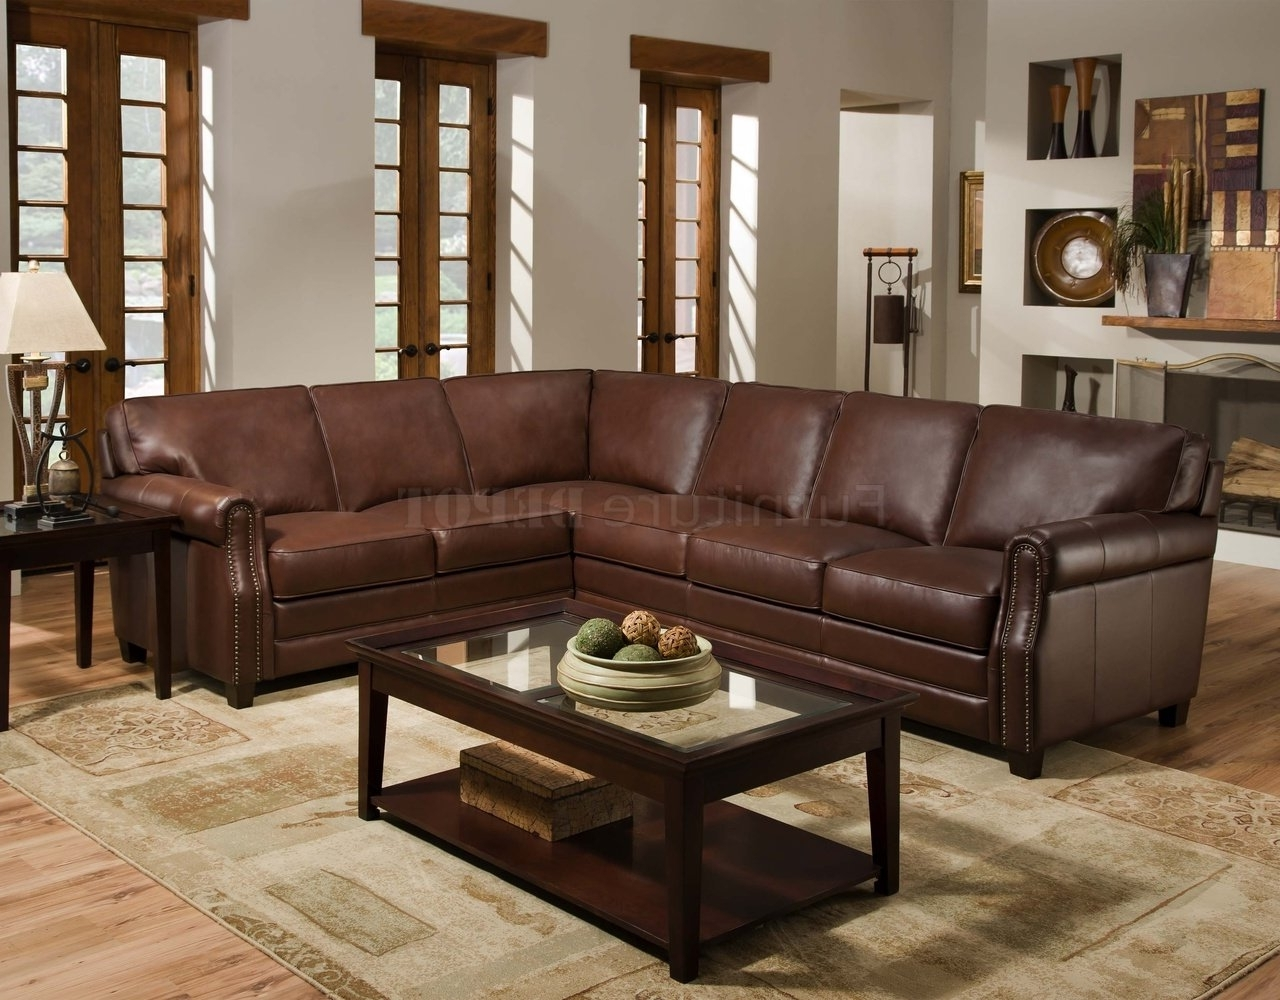 Sectional Sofas Under 400 Regarding Most Recently Released Furniture: Brown Leather Cheap Sectional Sofas Under 400 Plus Area (View 12 of 15)